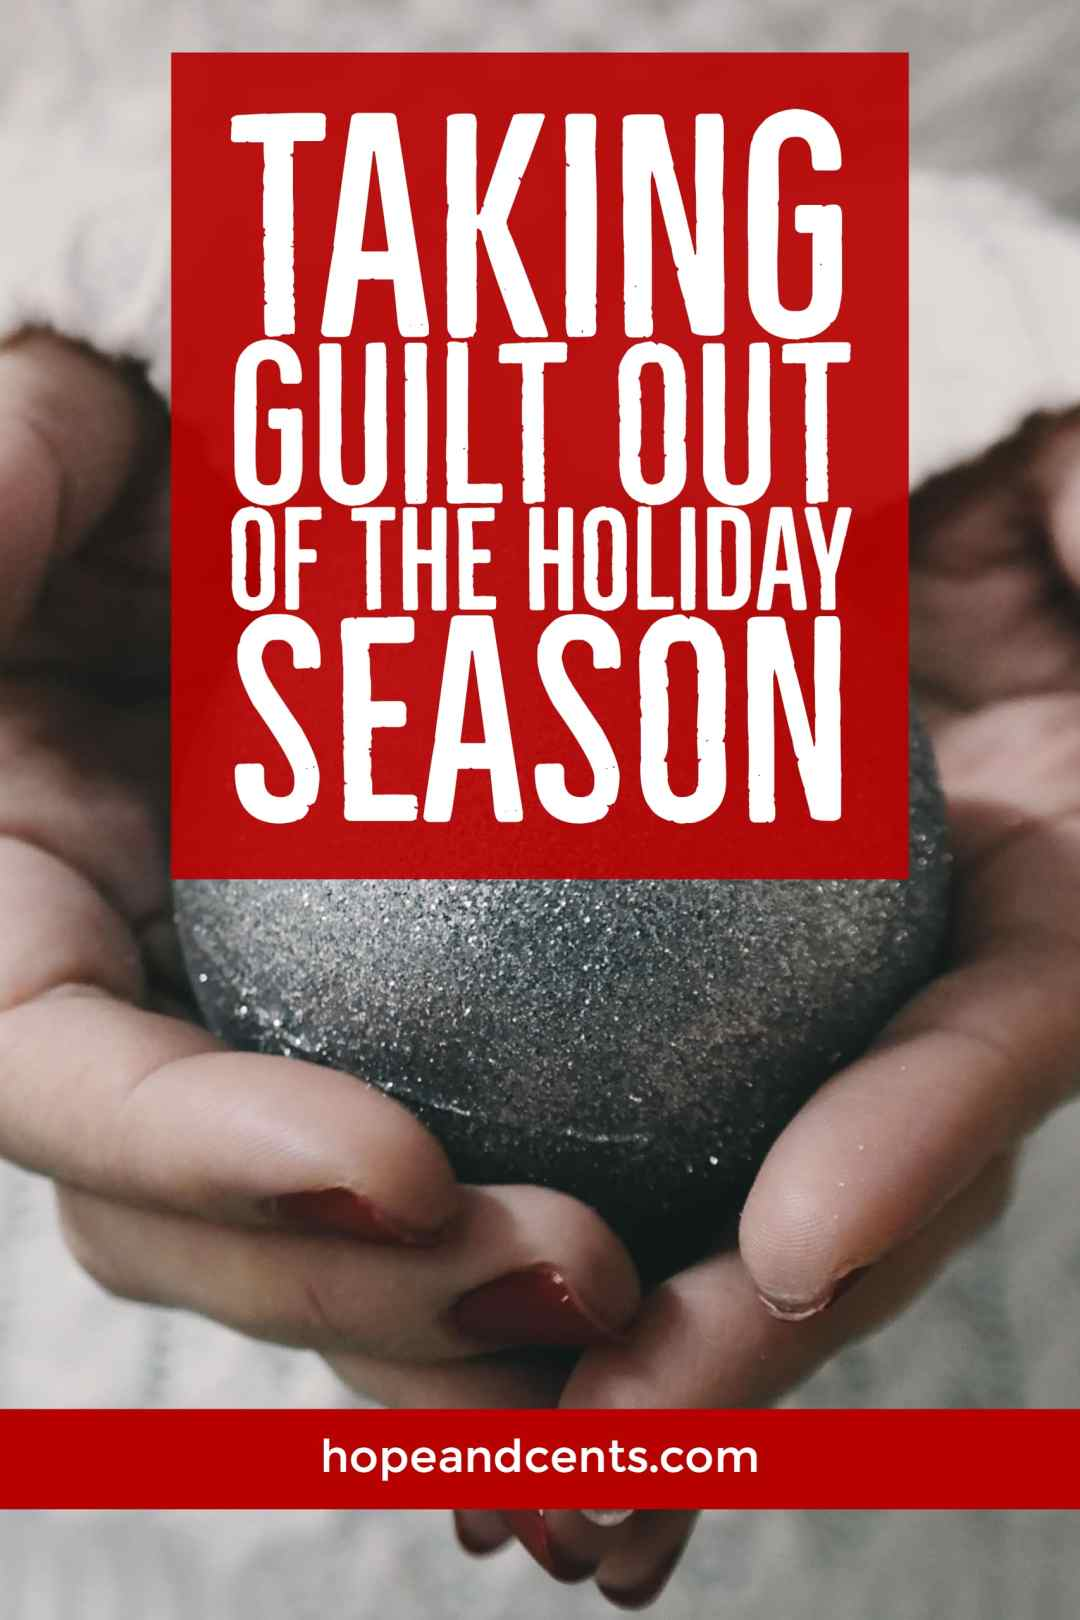 Love these tips on how to embrace the holiday season for all that it has to offer minus the guilt.